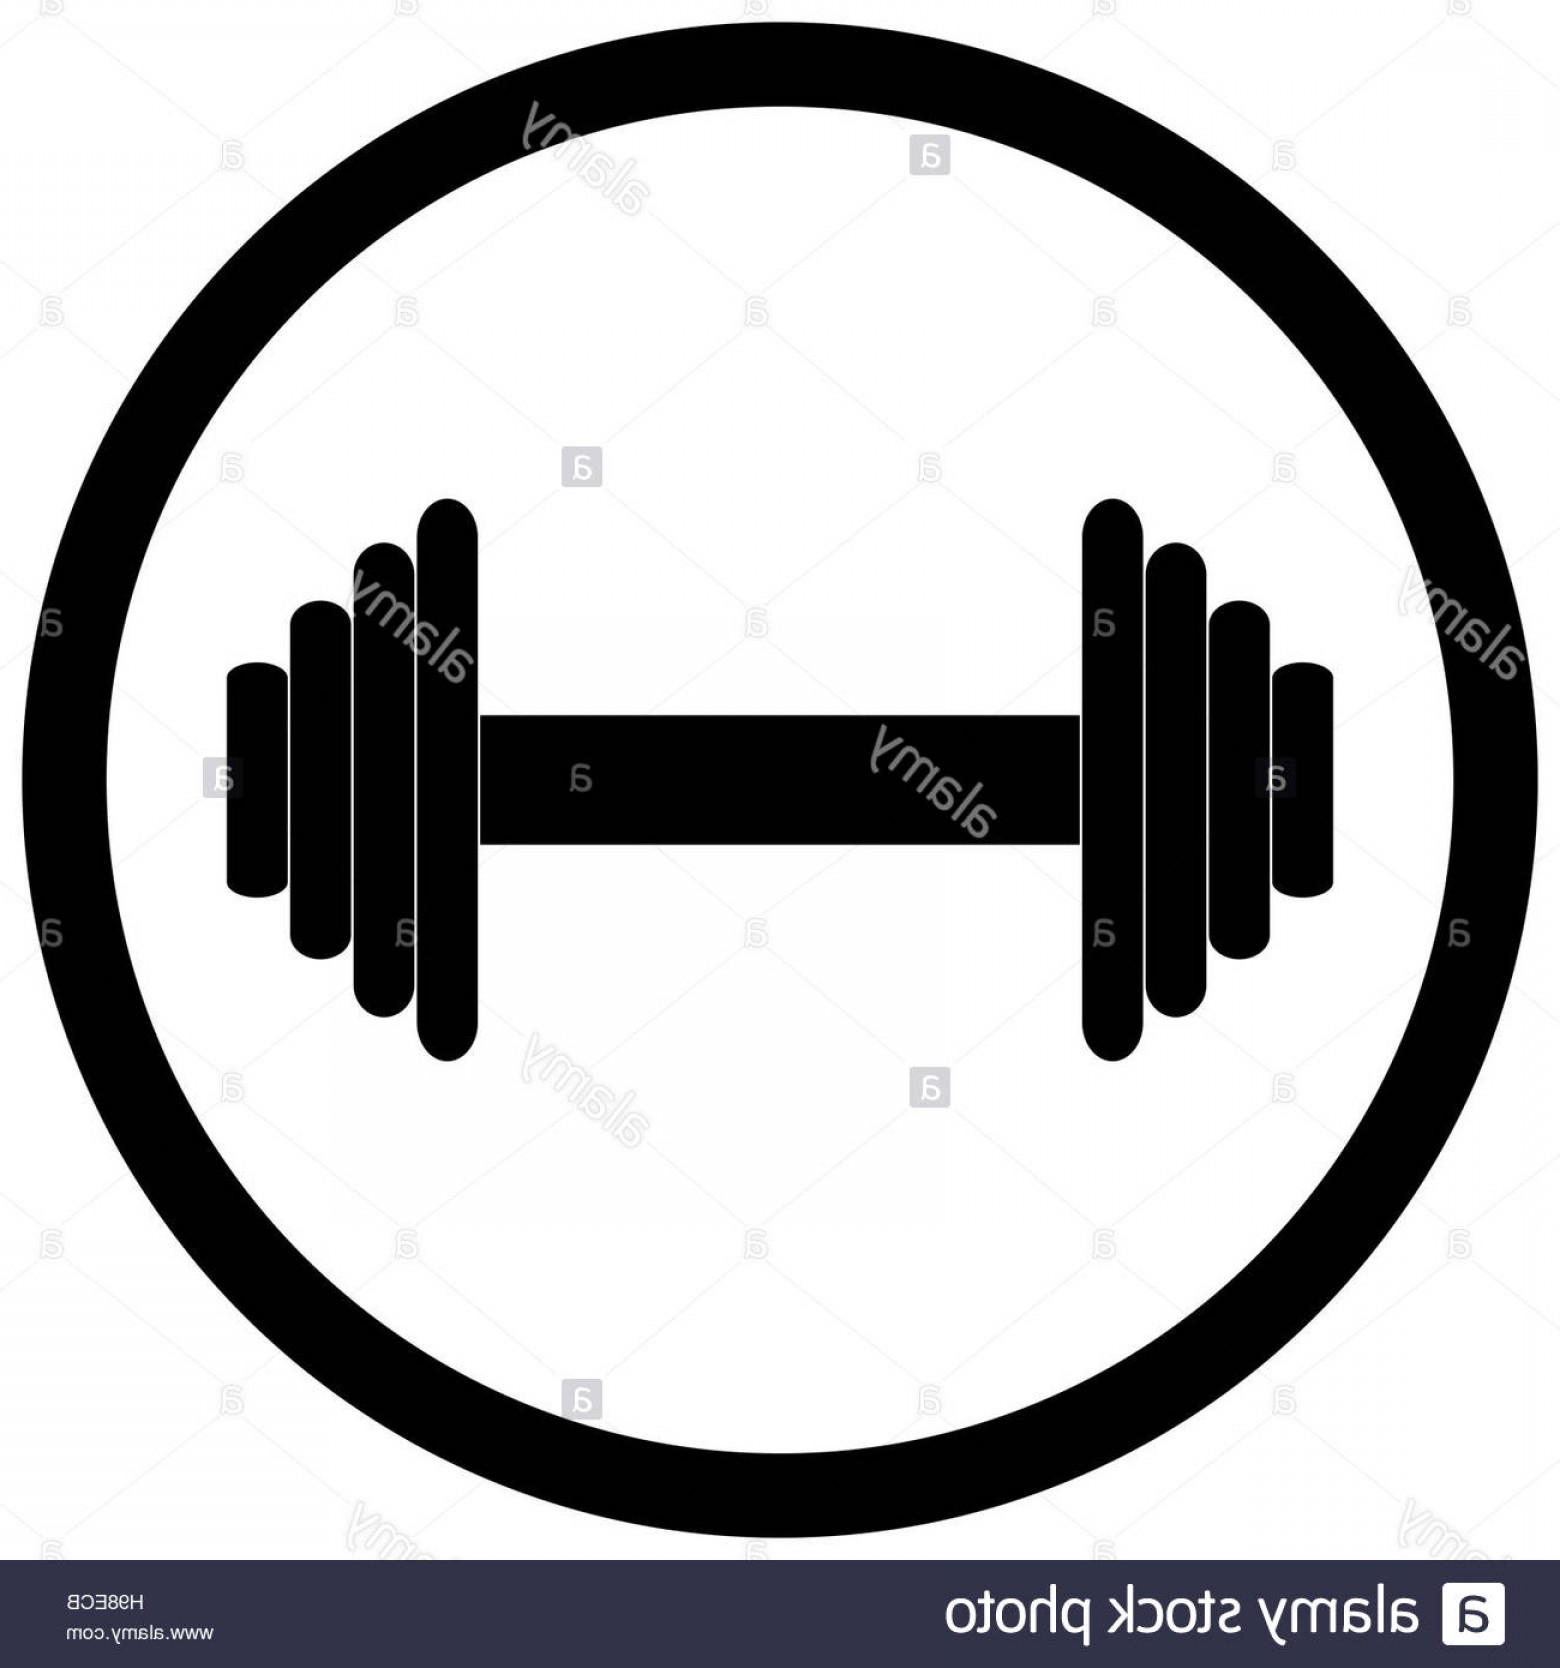 Vector Weight Lifting: Stock Photo Dumbbell Black Icon Weight Lifting Dumbell For Fitness In Gym Vector